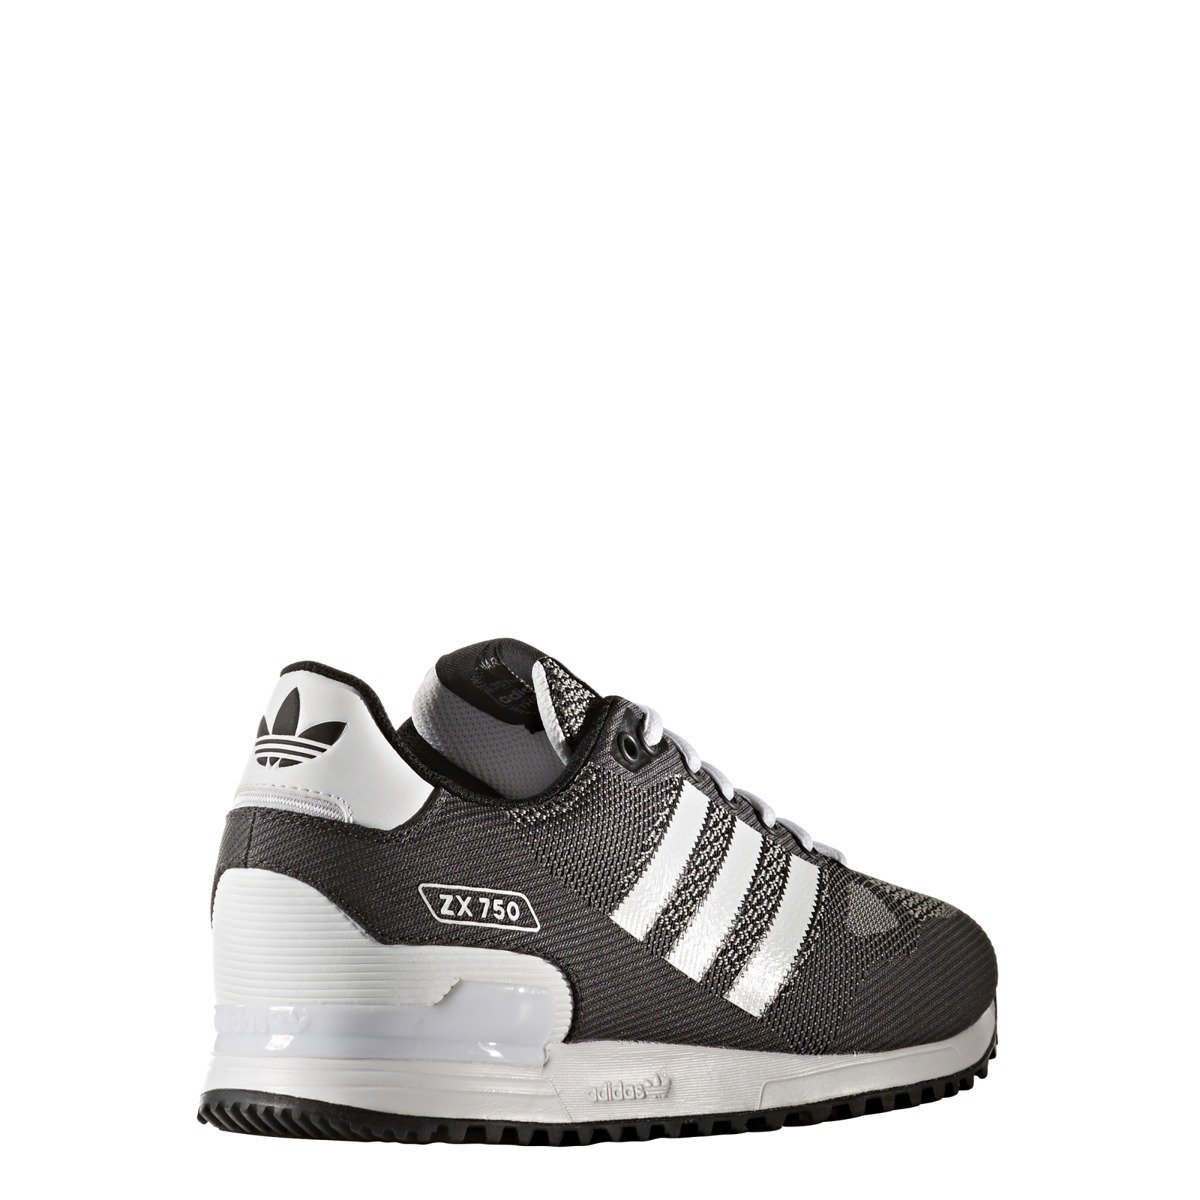 4bc01e026 ... where to buy adidas zx 750 wv shoes bb1222 ab627 856ba